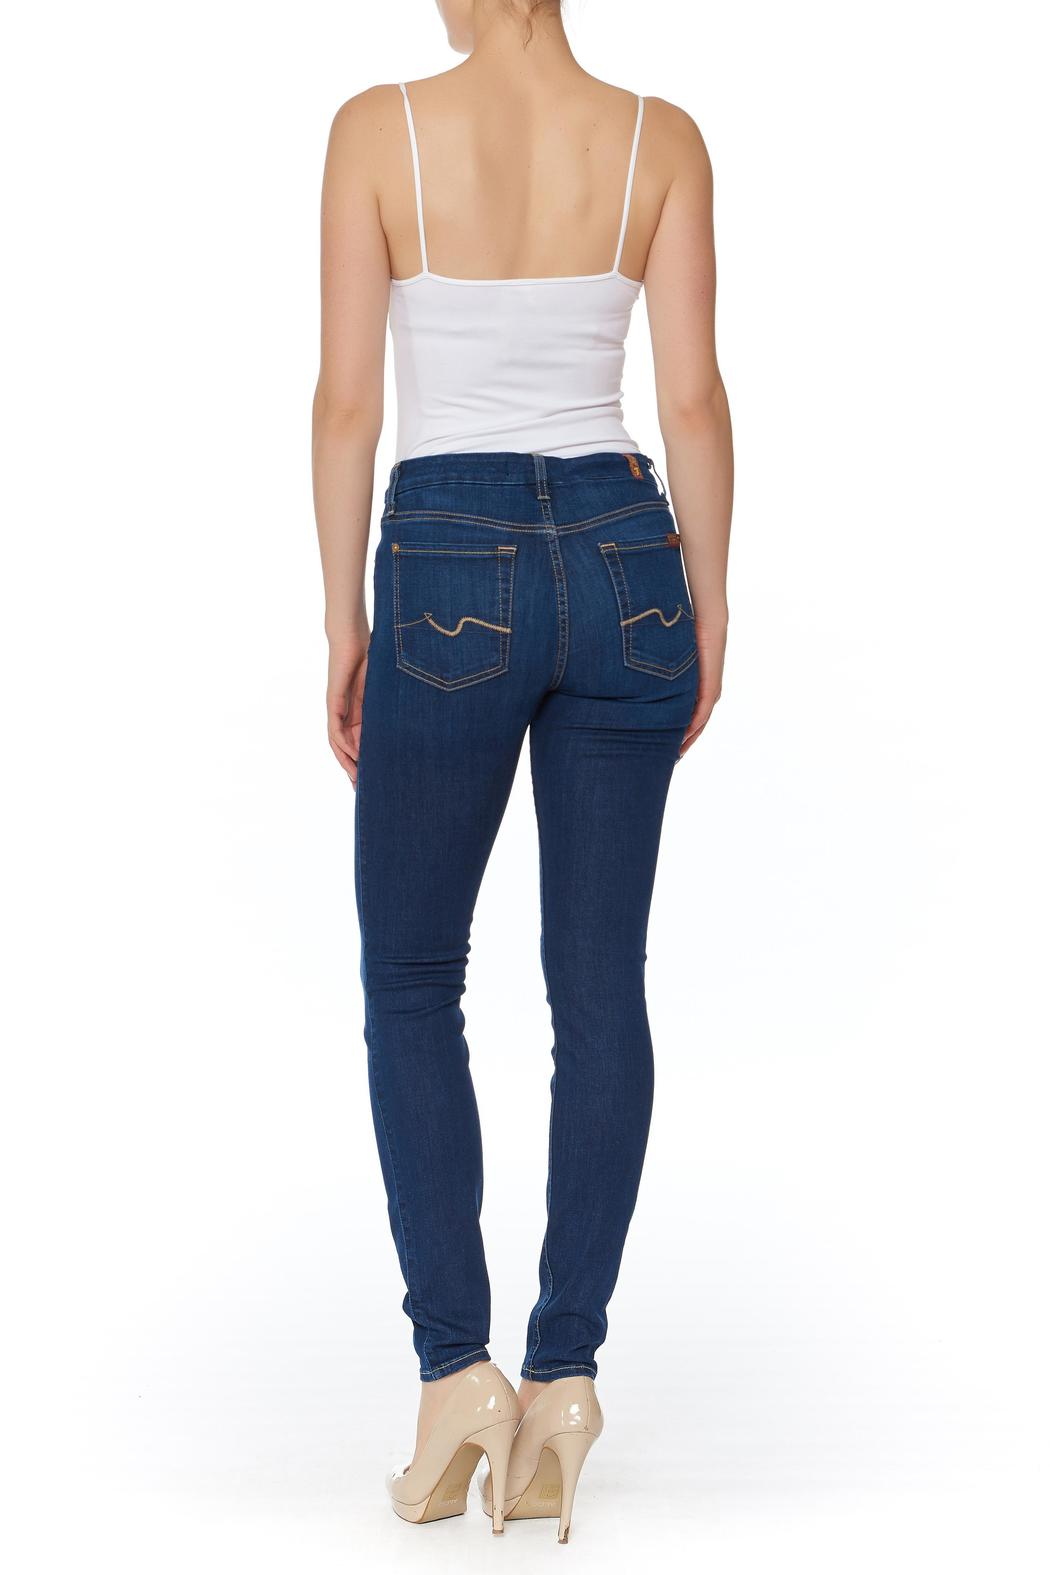 7 For all Mankind Air Denim Skinny Jeans - Front Full Image